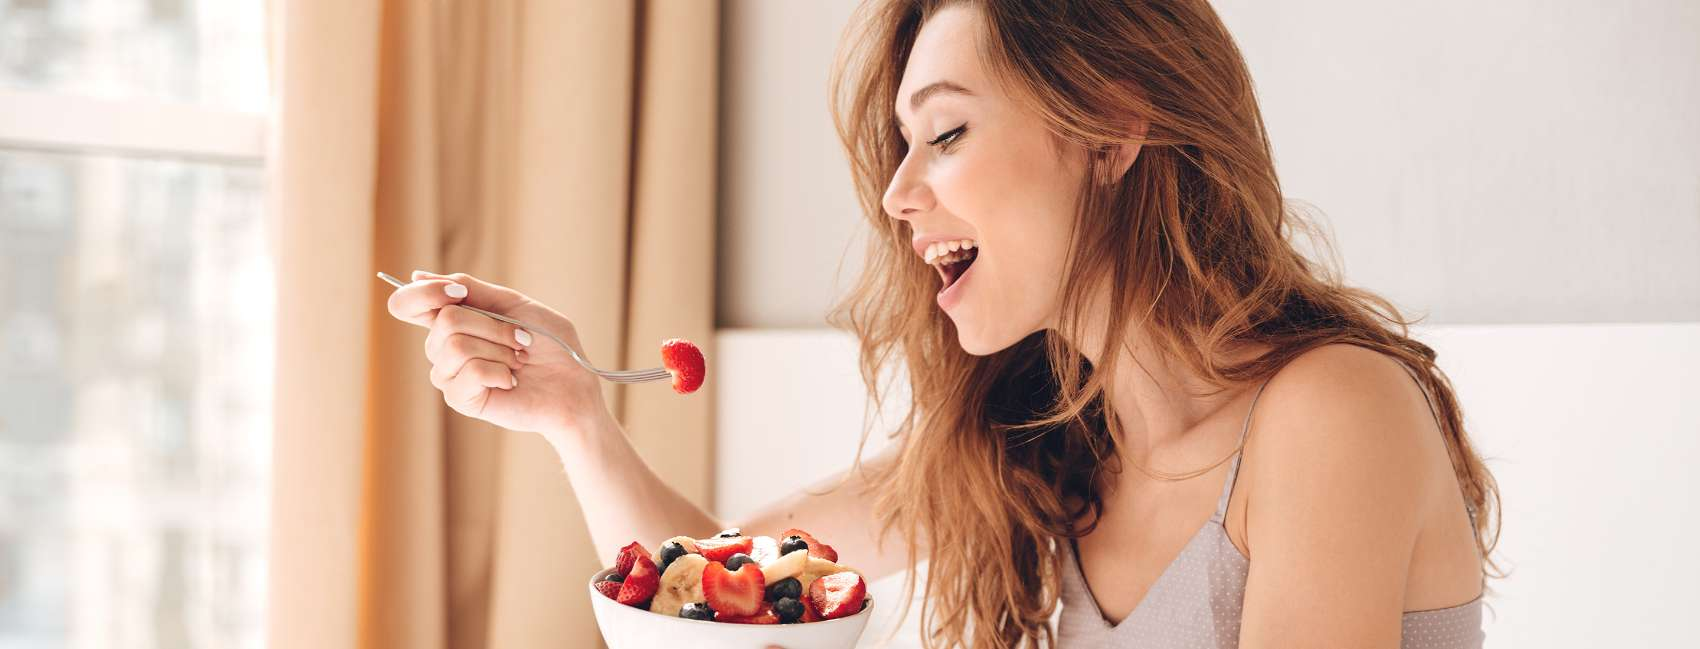 Smiling girl with long hair in a bedroom setting eating a bowl of fruit salad from a fork <br>